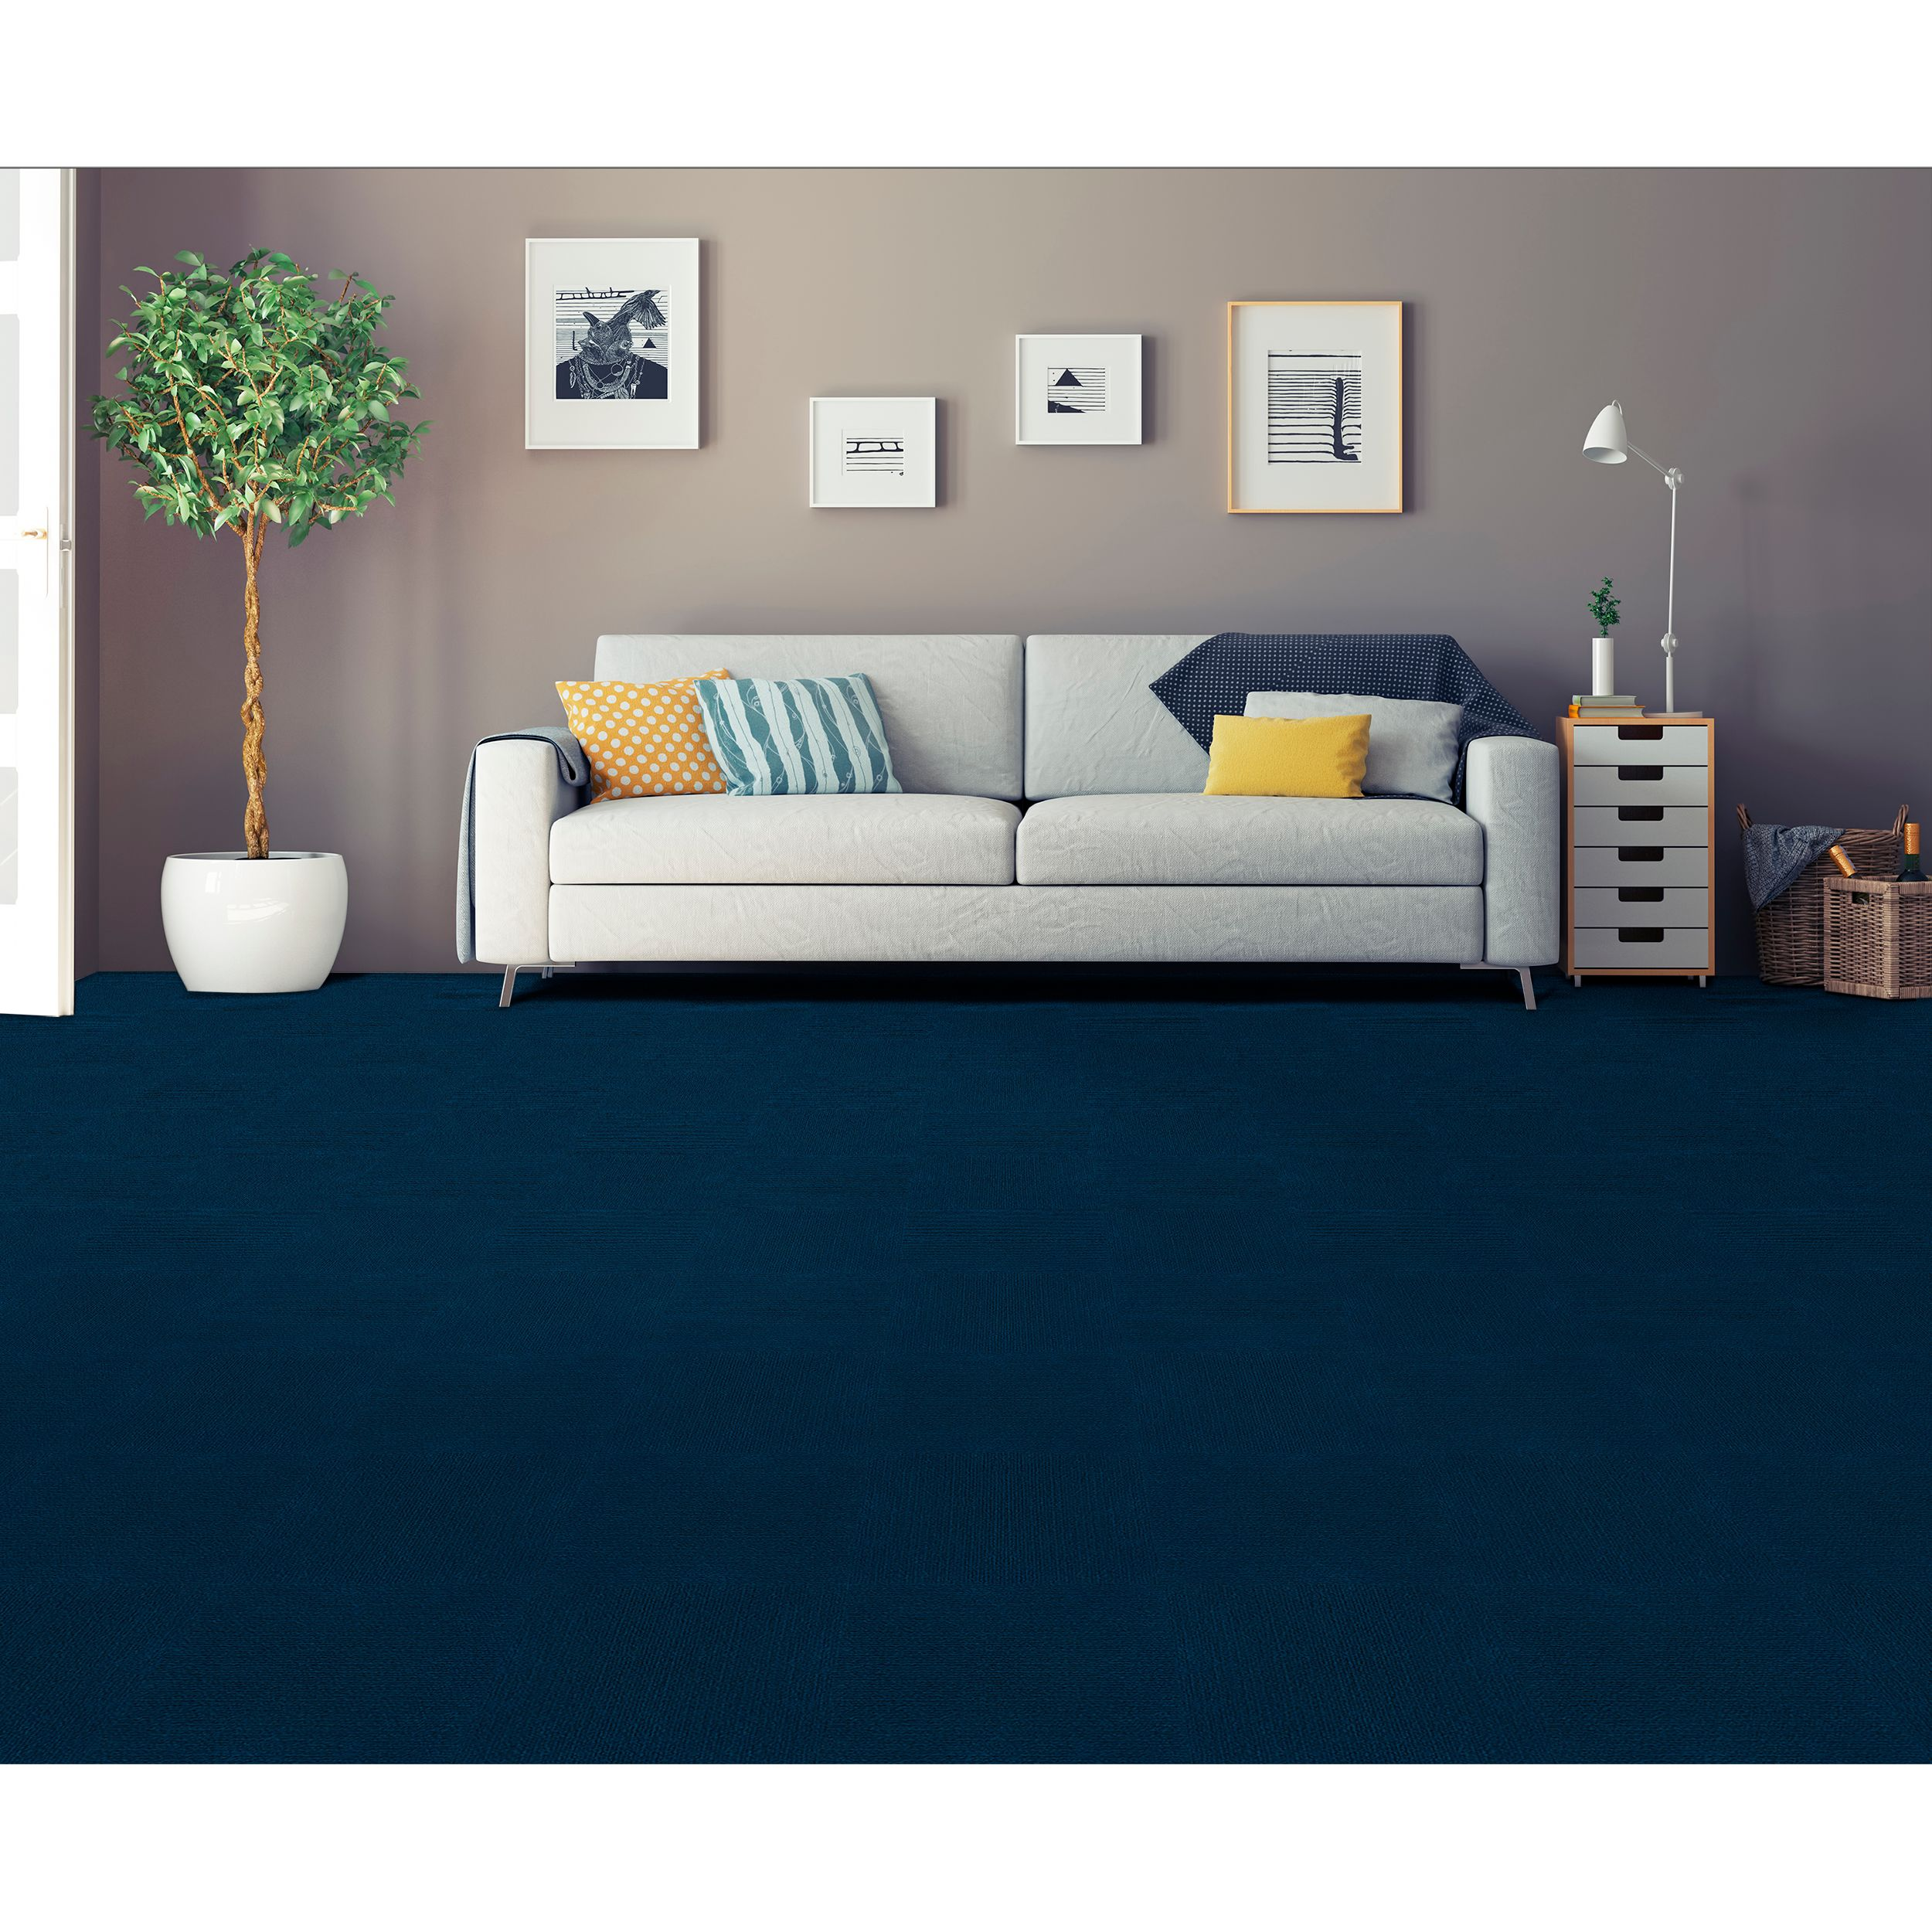 How Much Does It Cost To Carpet A Room 20 X 22